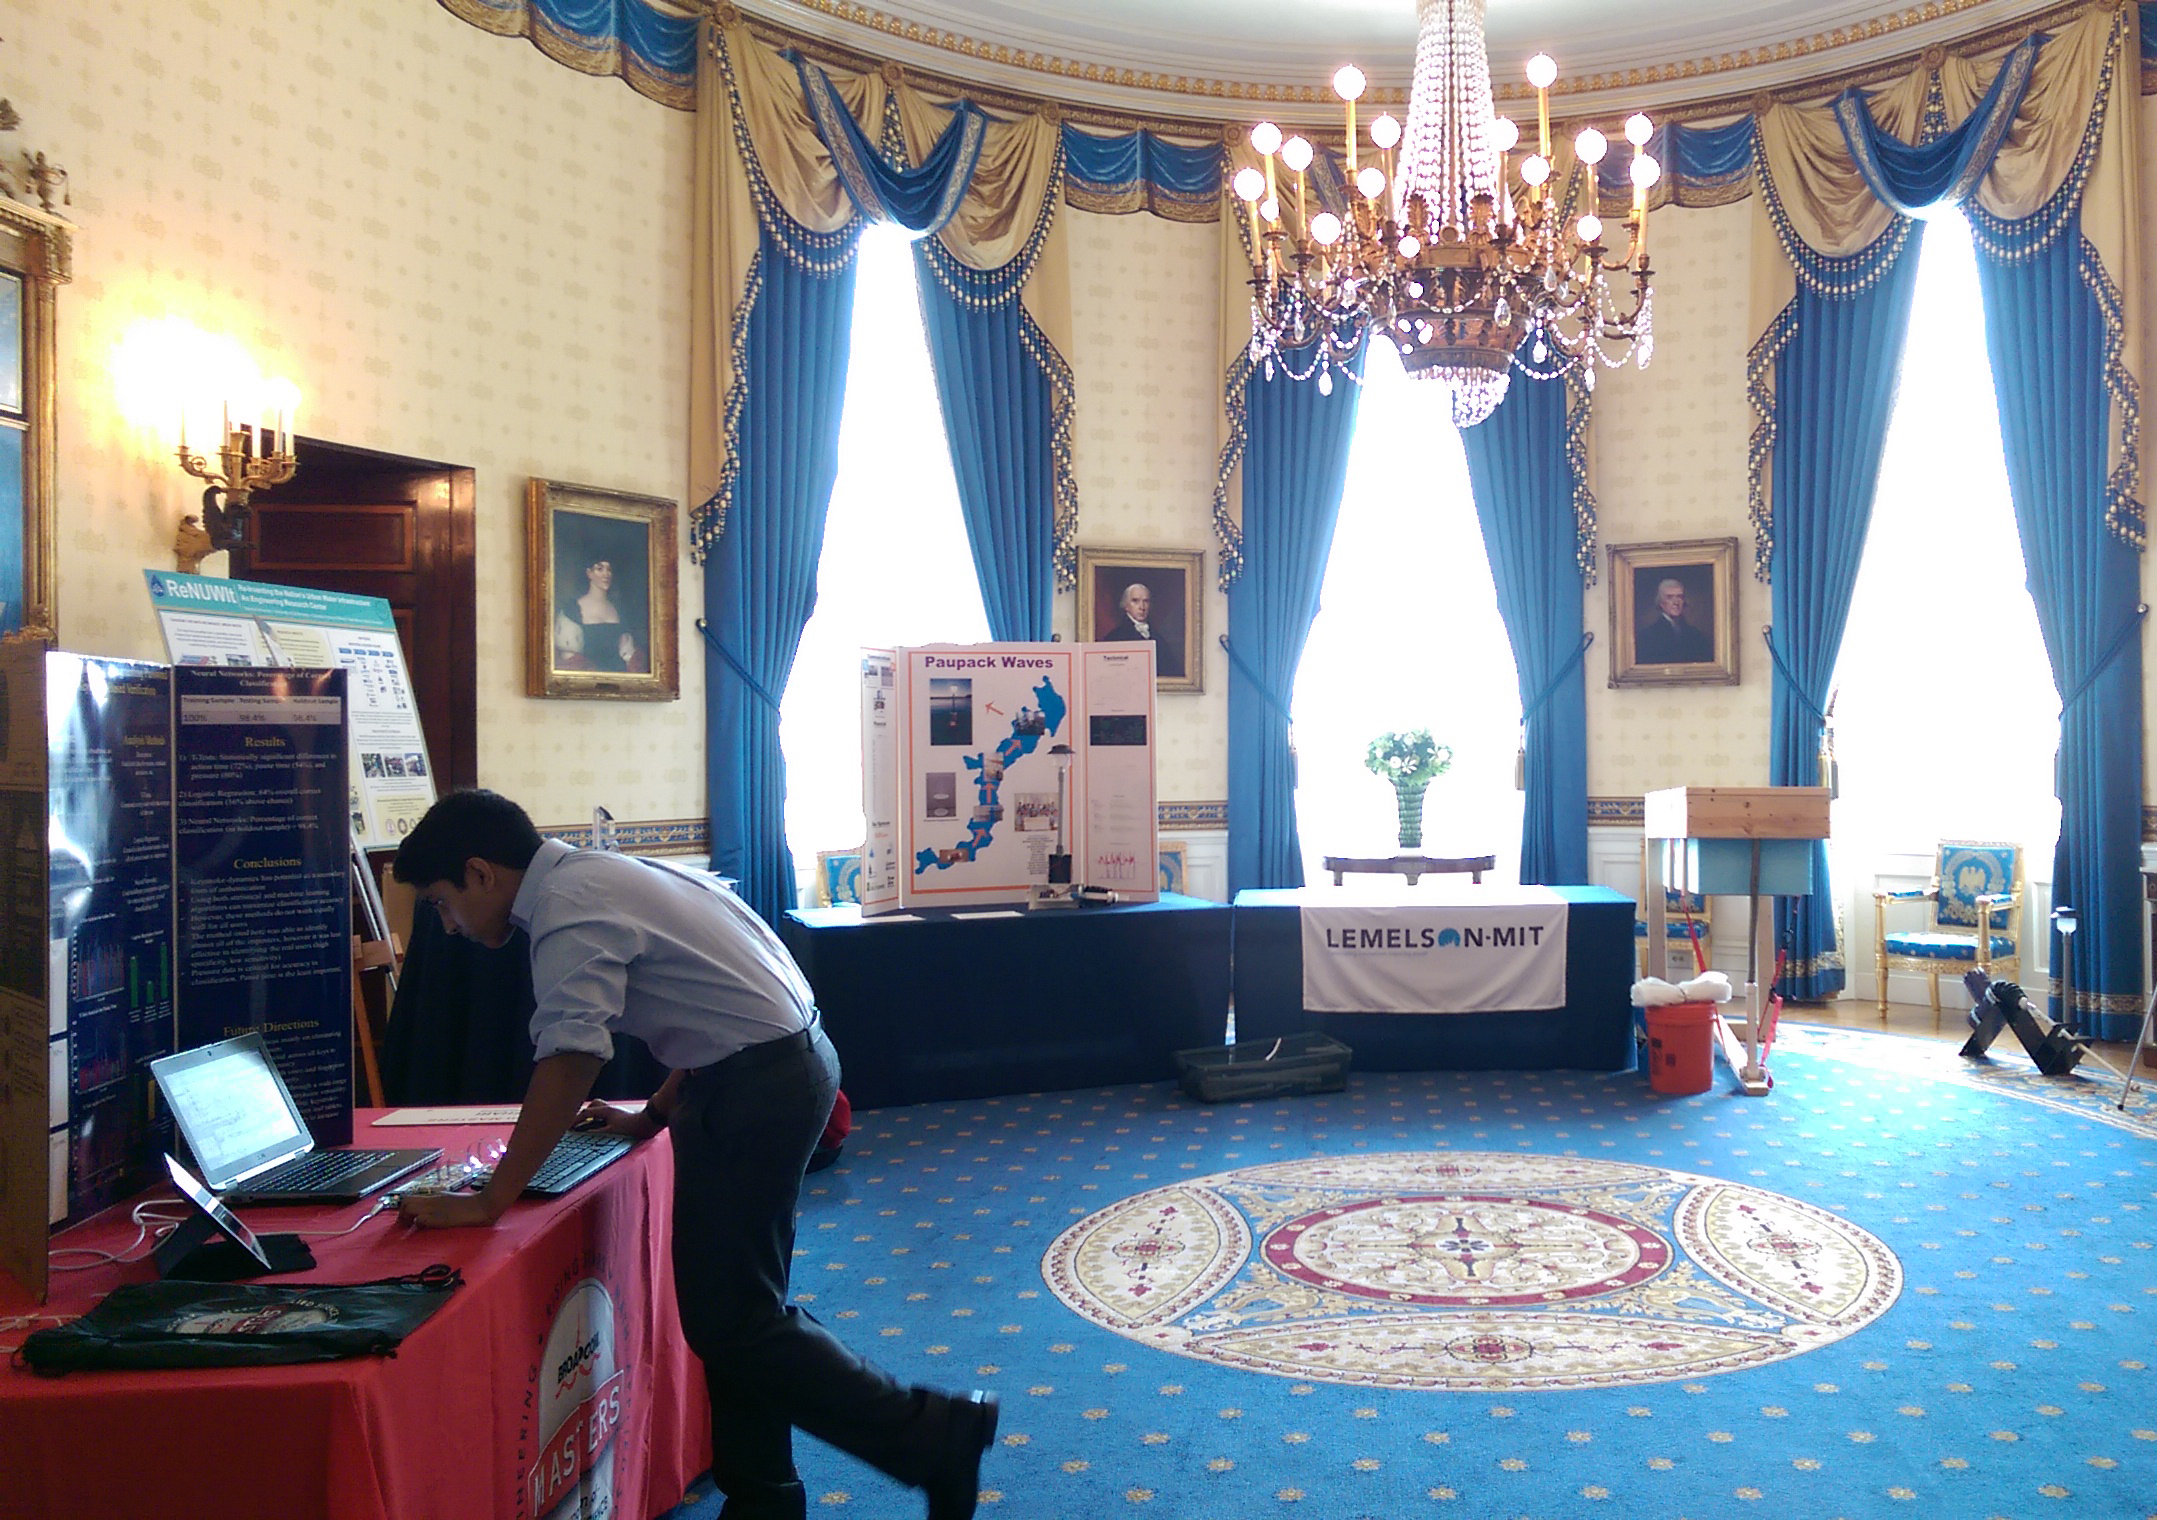 Nikhil Behari, Broadcom MASTERS 2014 finalist, sets up his project in The Blue Room of the White House.